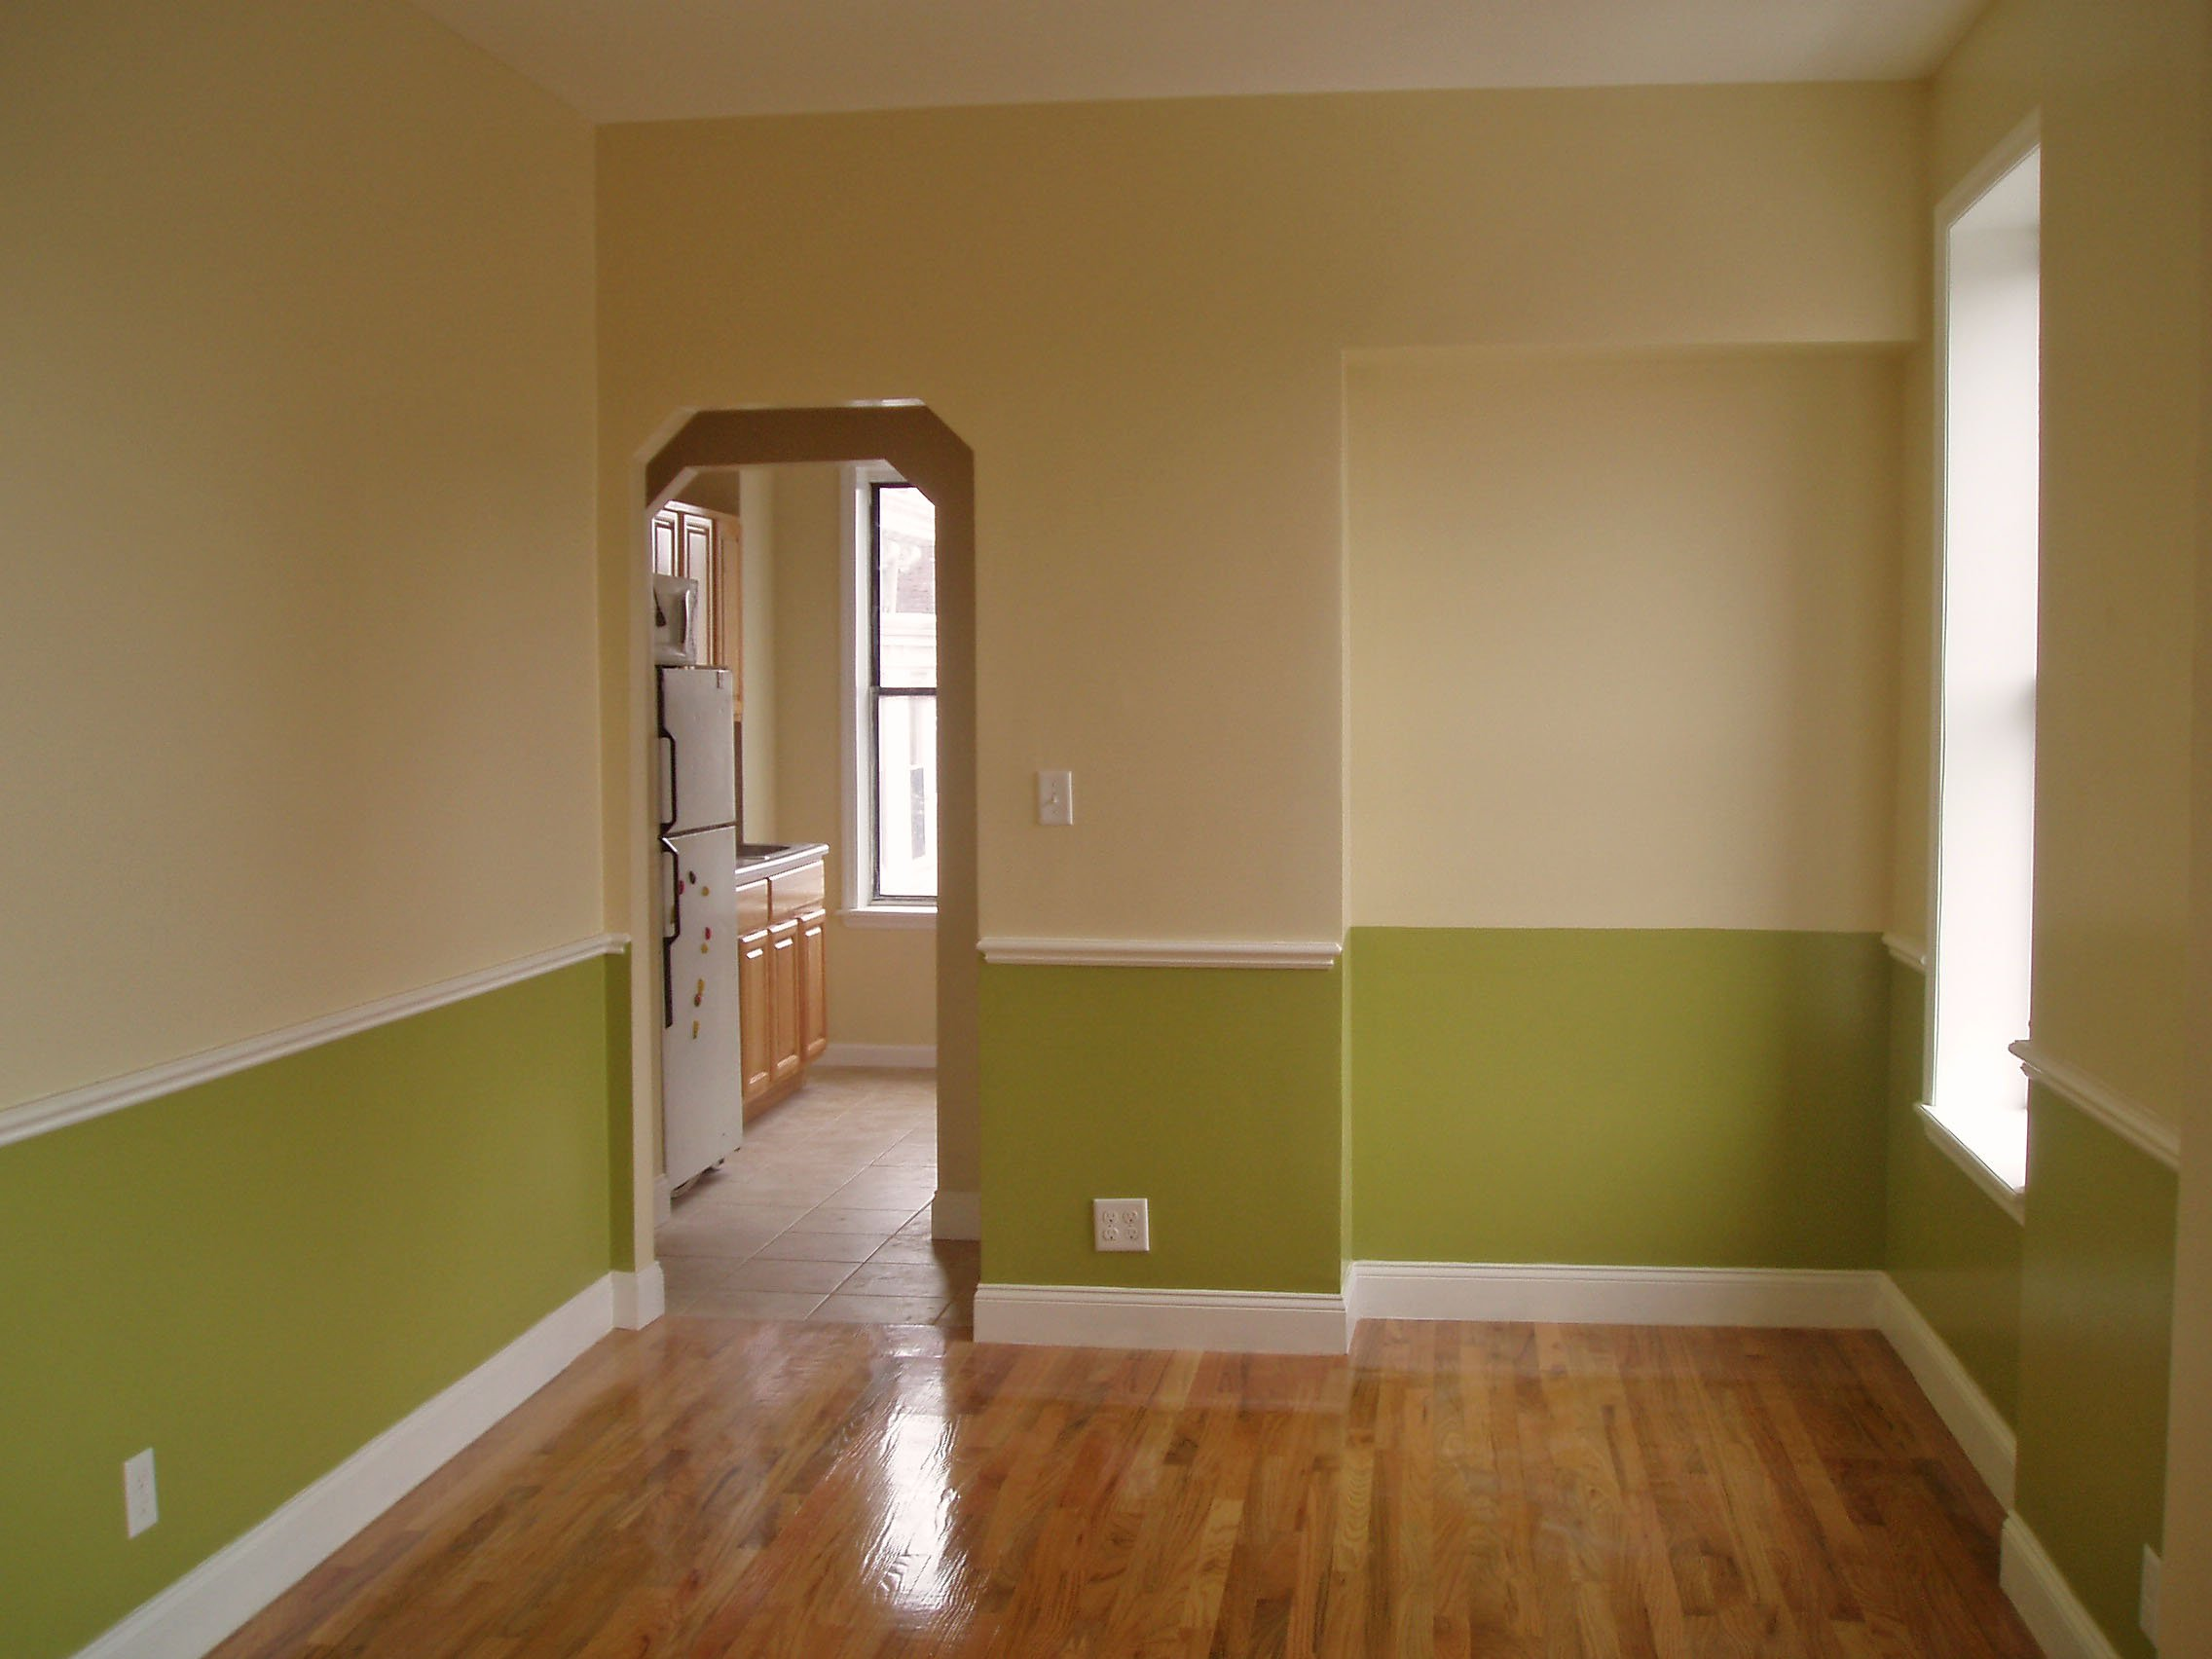 Crown heights 2 bedroom apartment for rent brooklyn crg3003 for Apartments for rent two bedroom